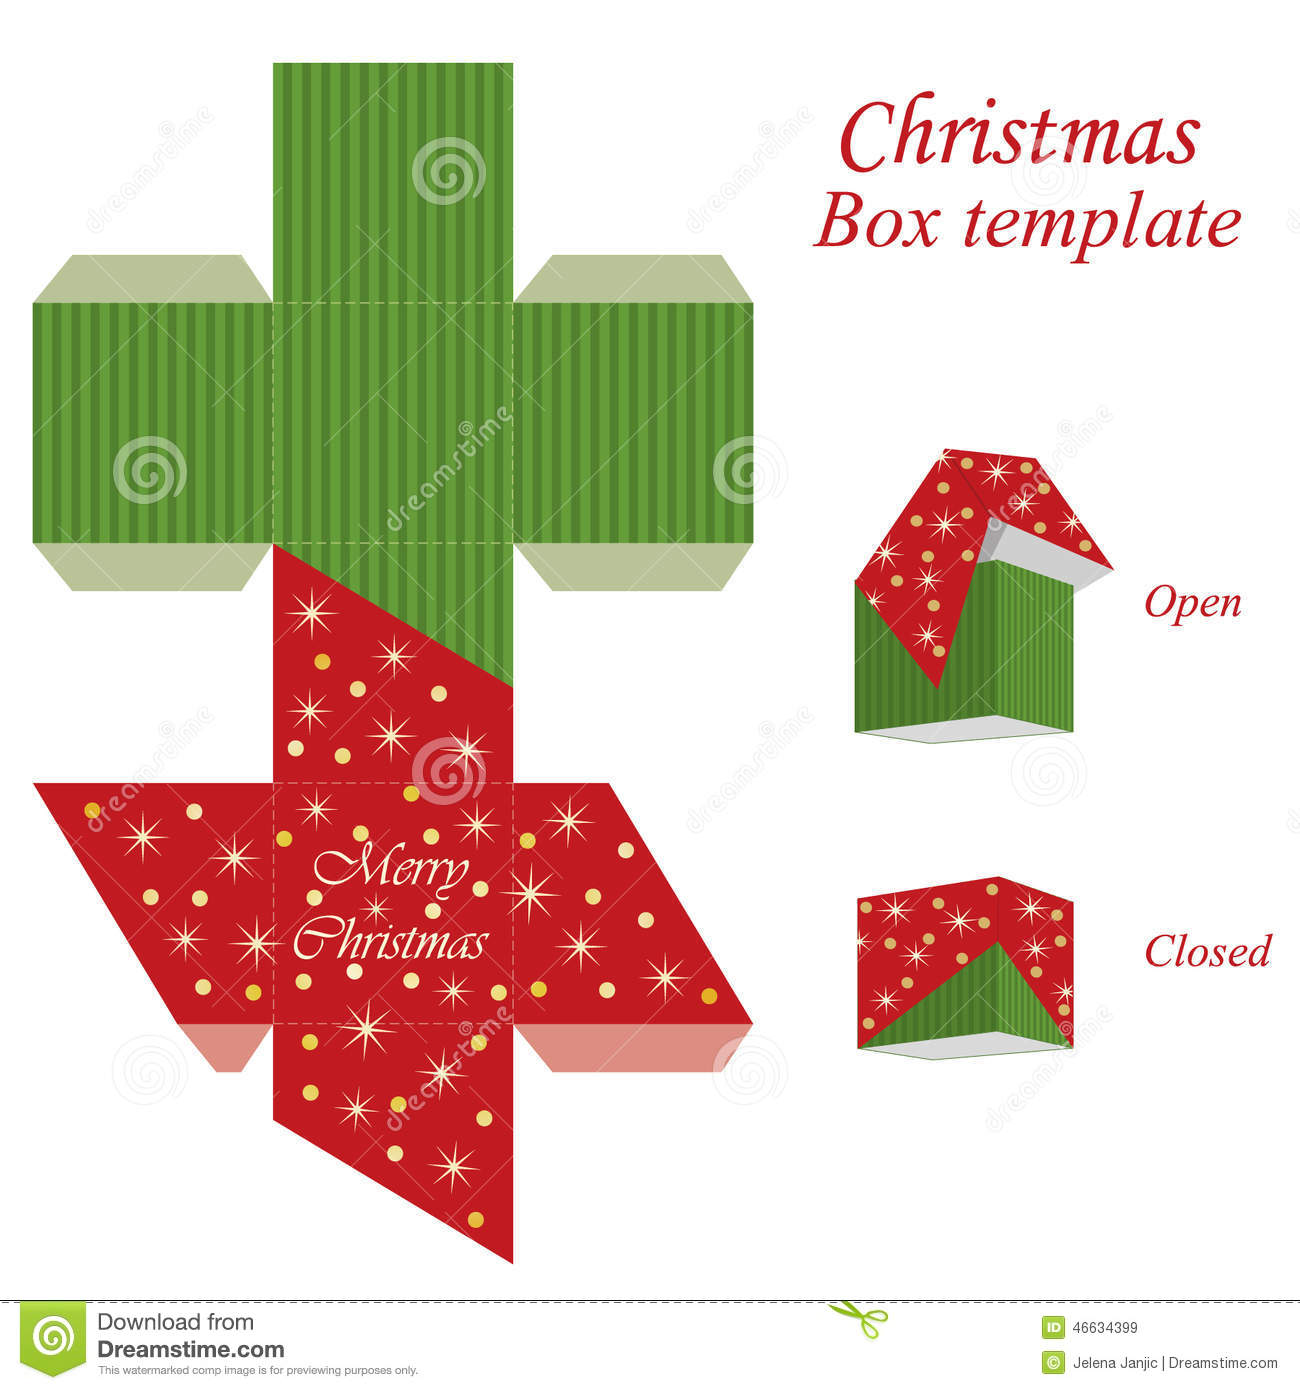 Christmas Gift Box Template.Christmas Gift Box Template Stock Vector Illustration Of